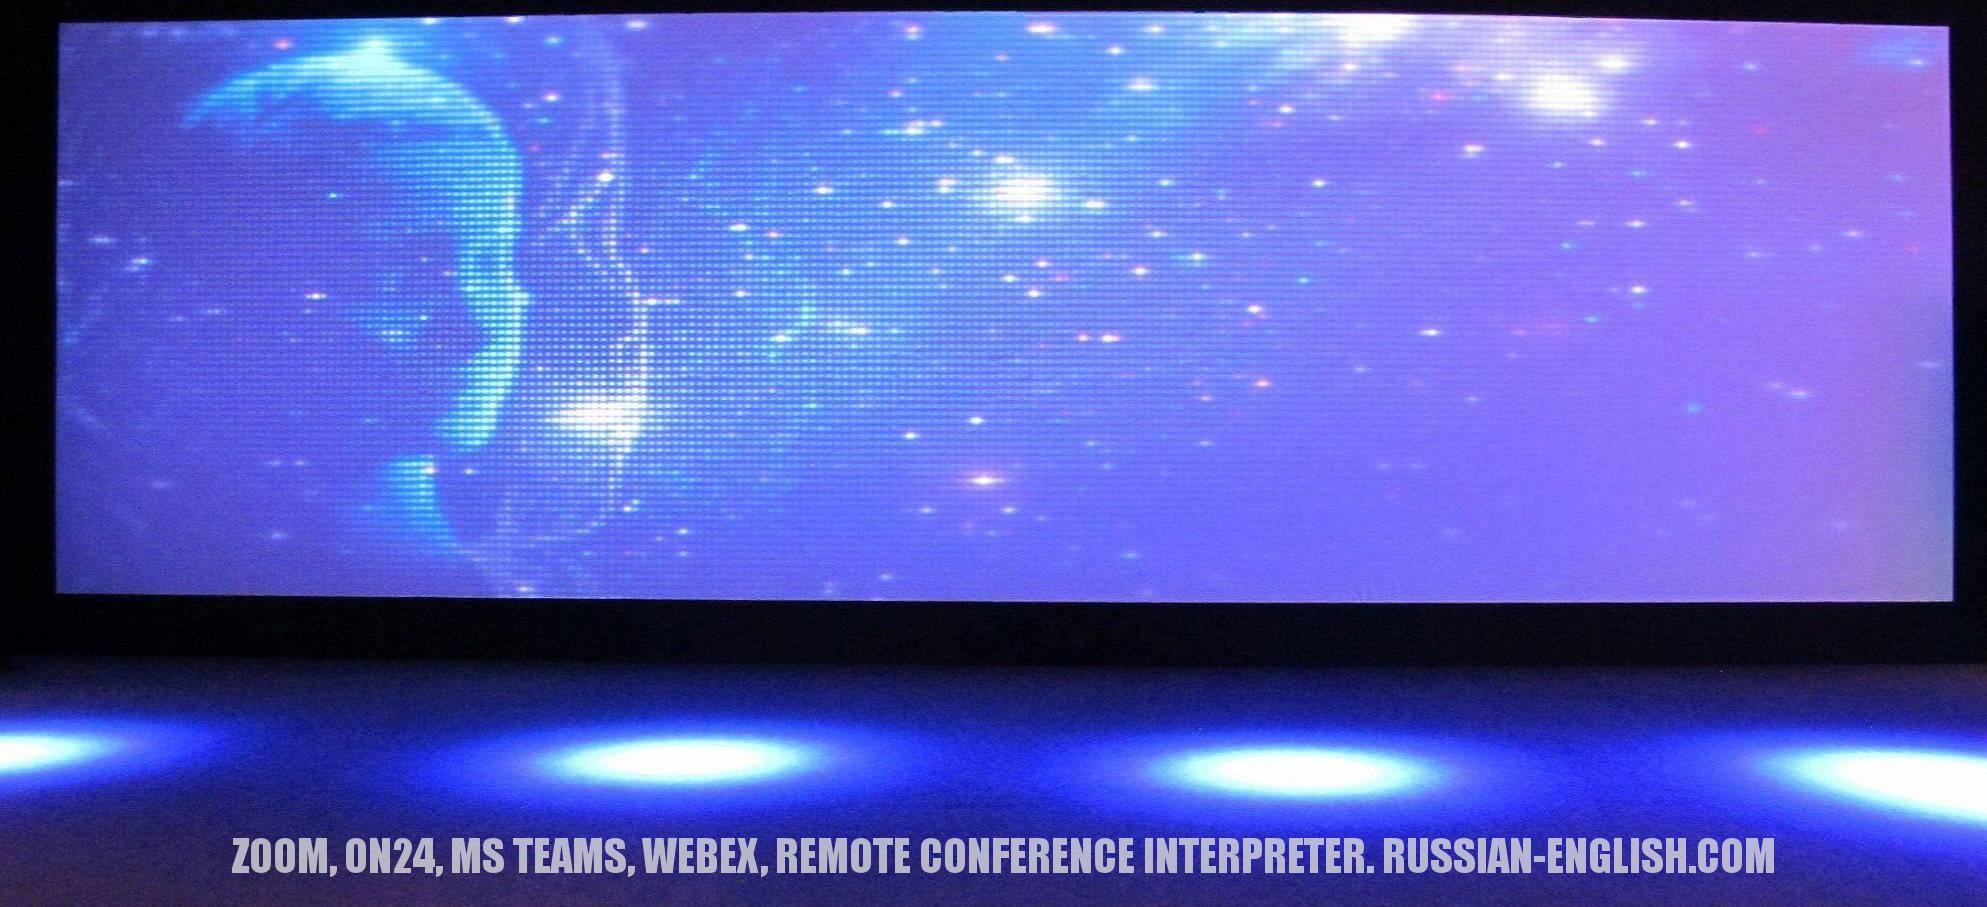 ZOOM, ON24, MS TEAMS, WEBEX, REMOTE CONFERENCE INTERPRETER. RUSSIAN-ENGLISH.COM